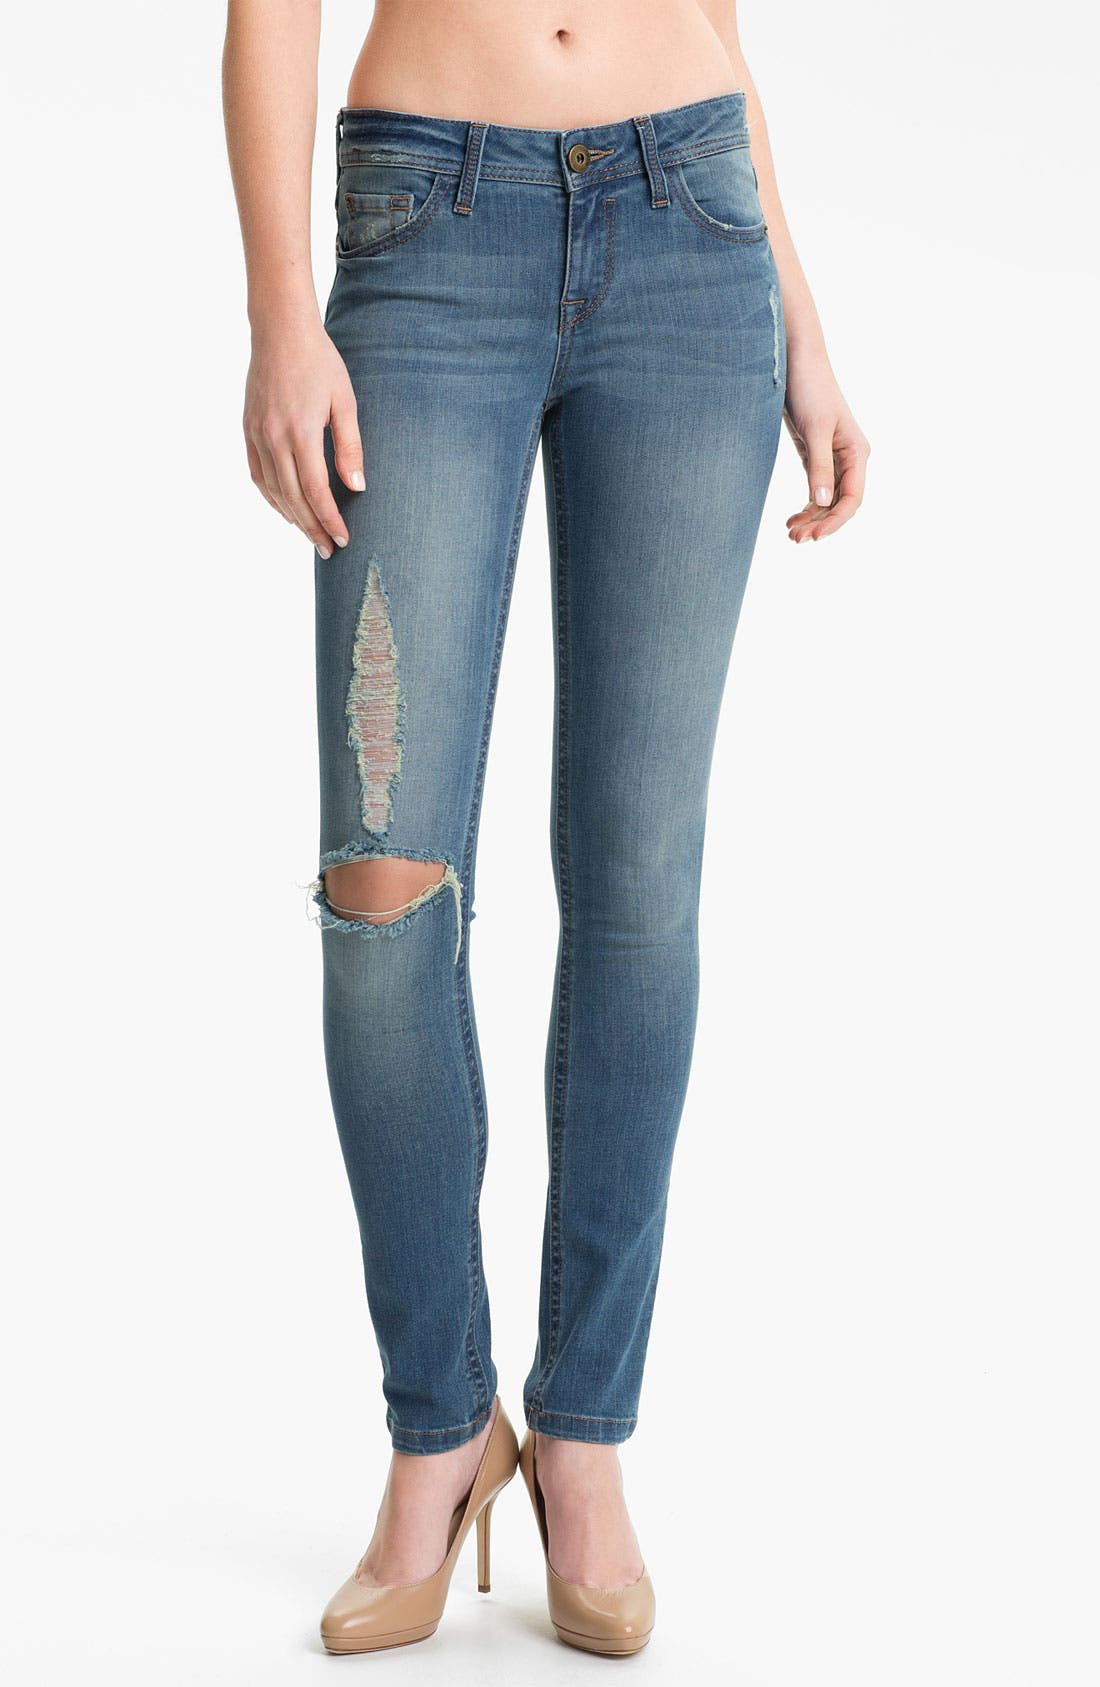 Alternate Image 1 Selected - DL1961 'Amanda' X-Fit Stretch Destroyed Denim Skinny Jeans (Mayhem)